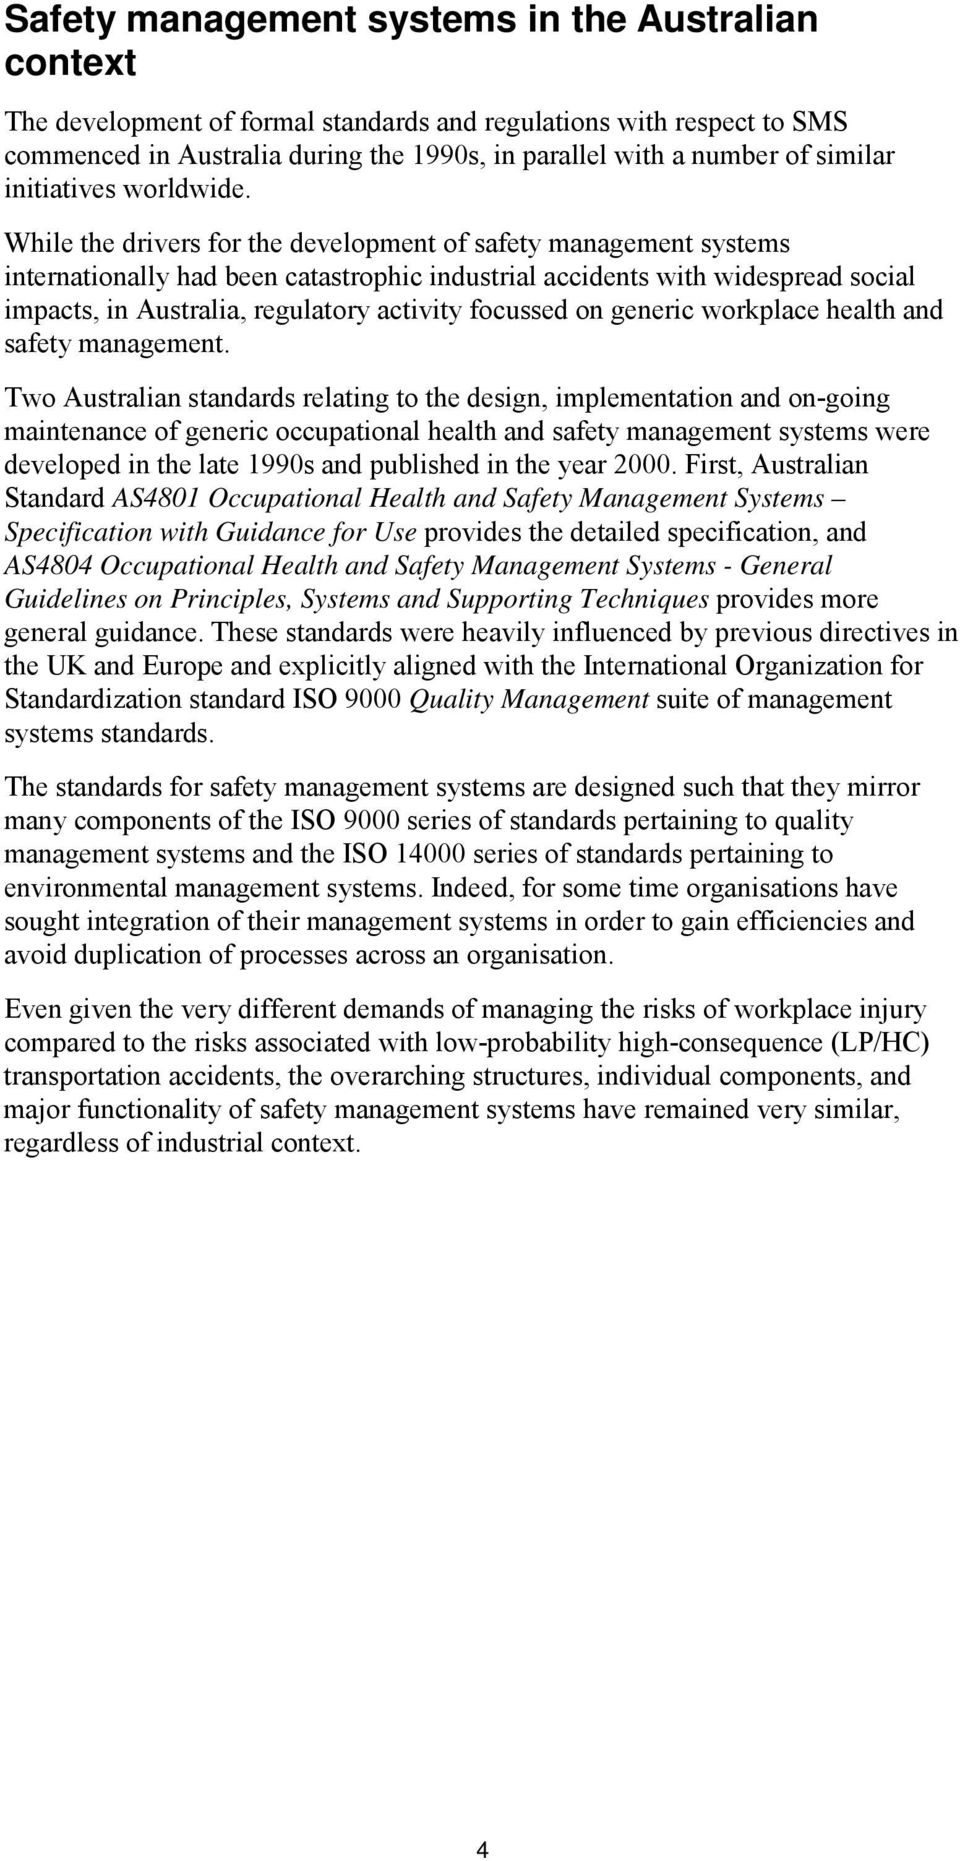 While the drivers for the development of safety management systems internationally had been catastrophic industrial accidents with widespread social impacts, in Australia, regulatory activity